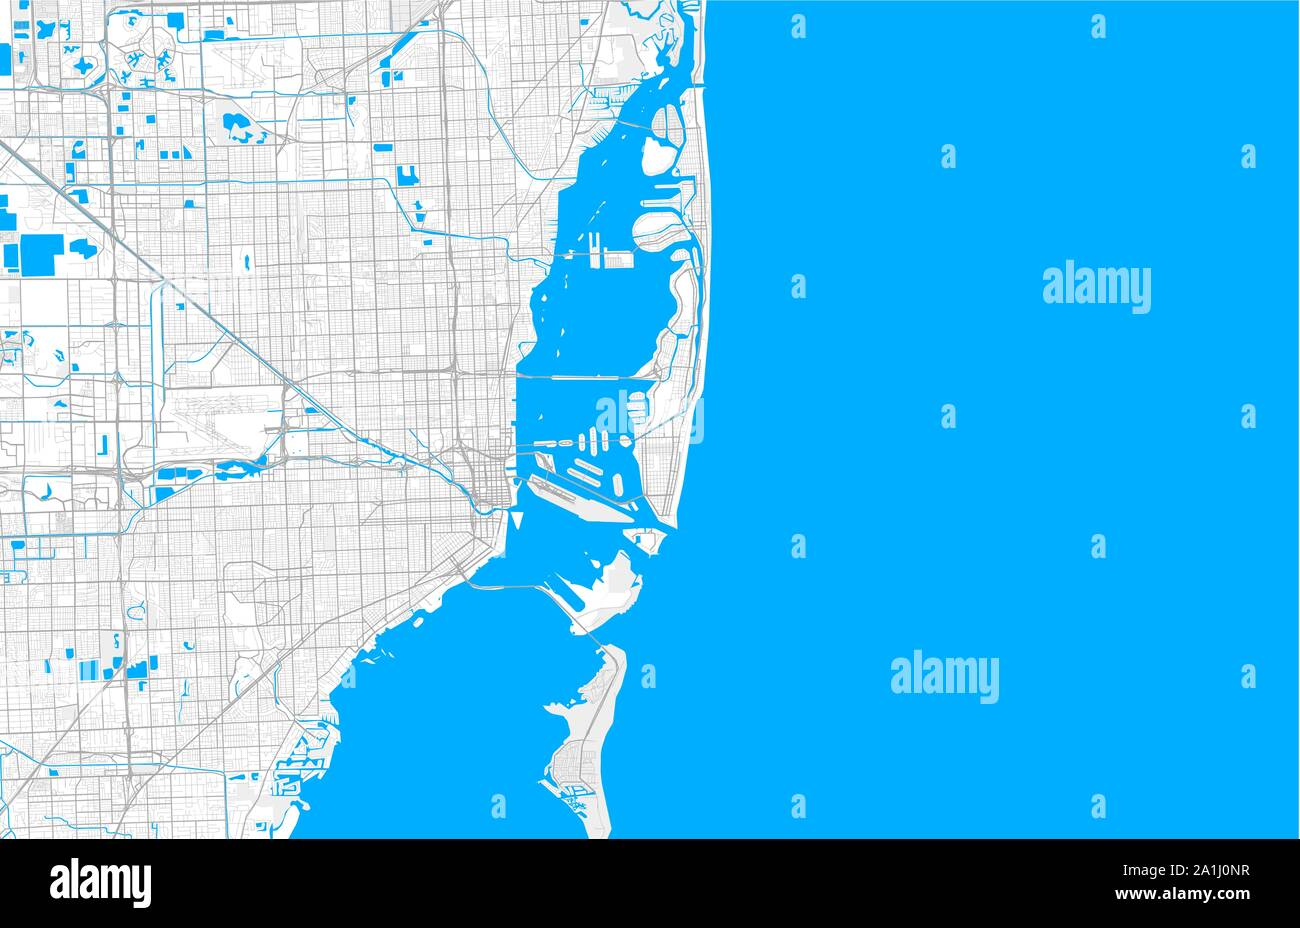 rich detailed vector area map of miami beach, florida, usa